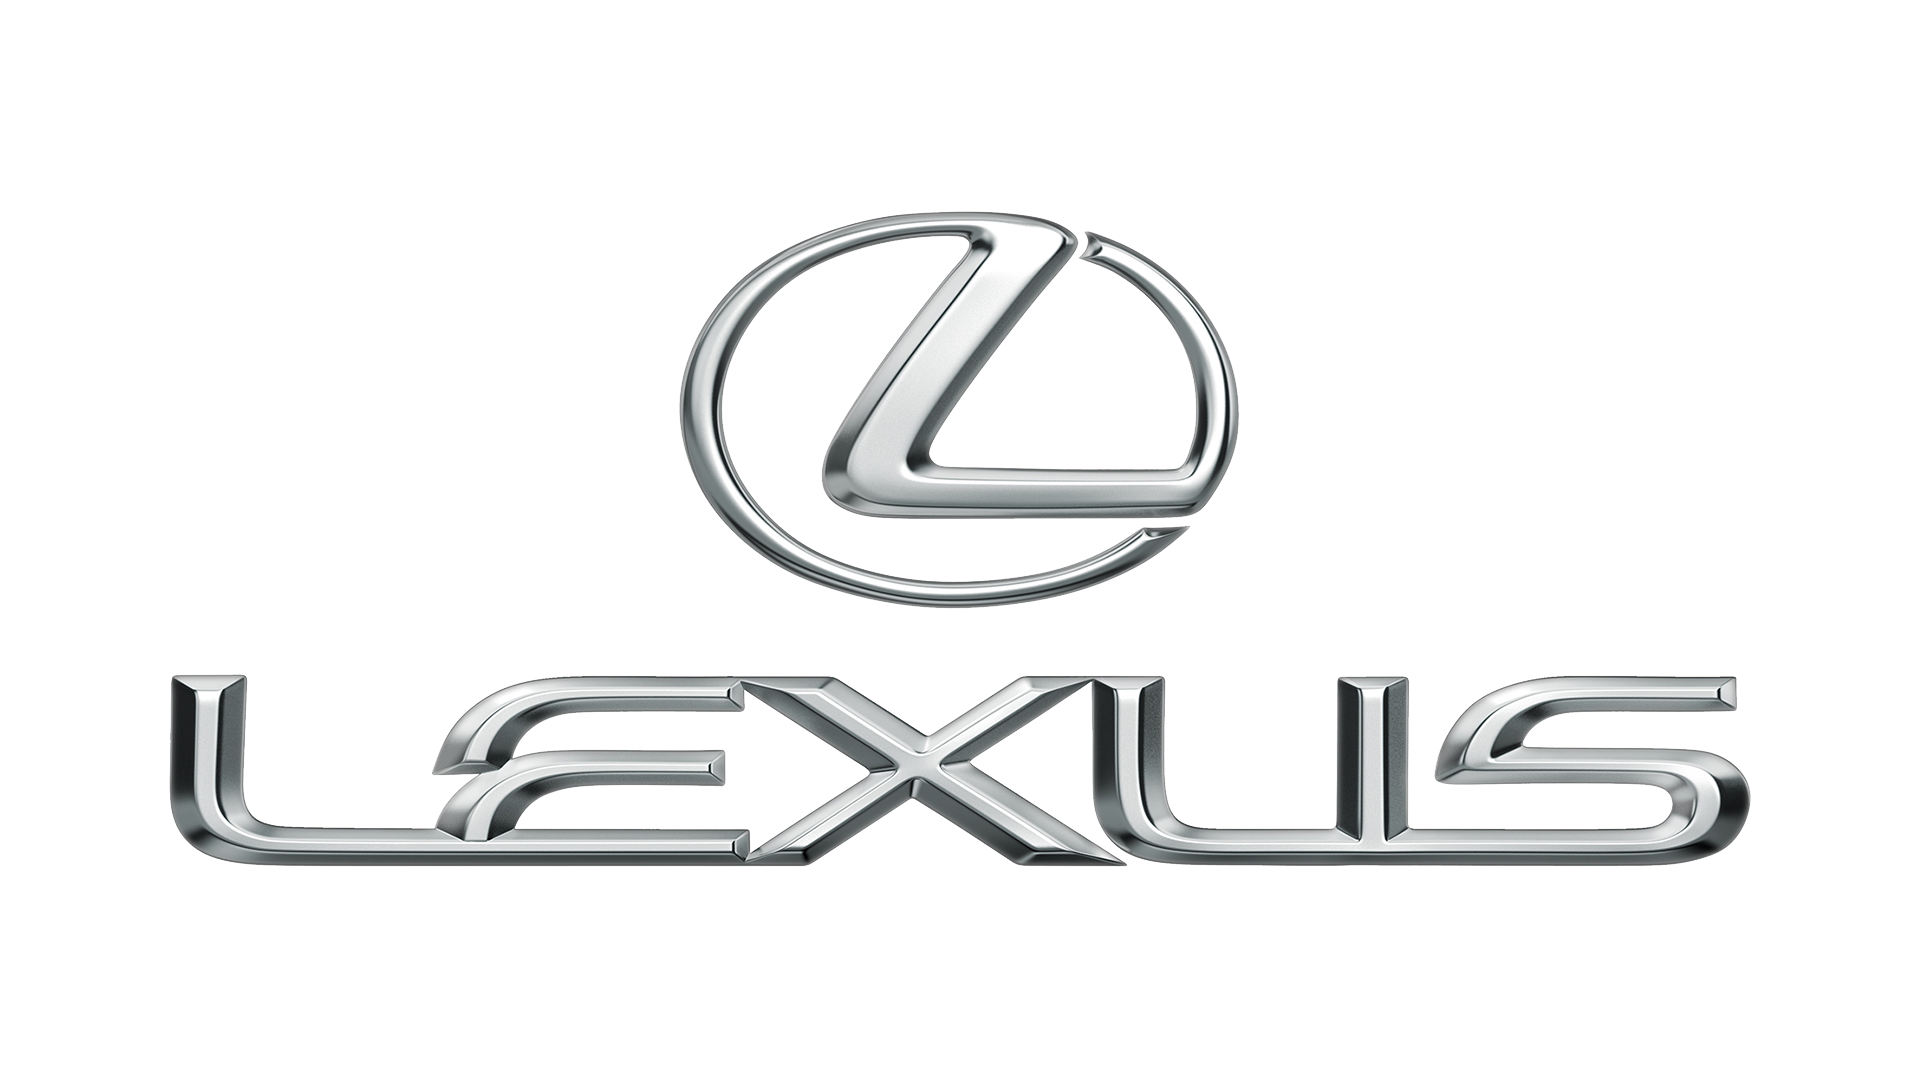 lexus logo  hd png  meaning  information